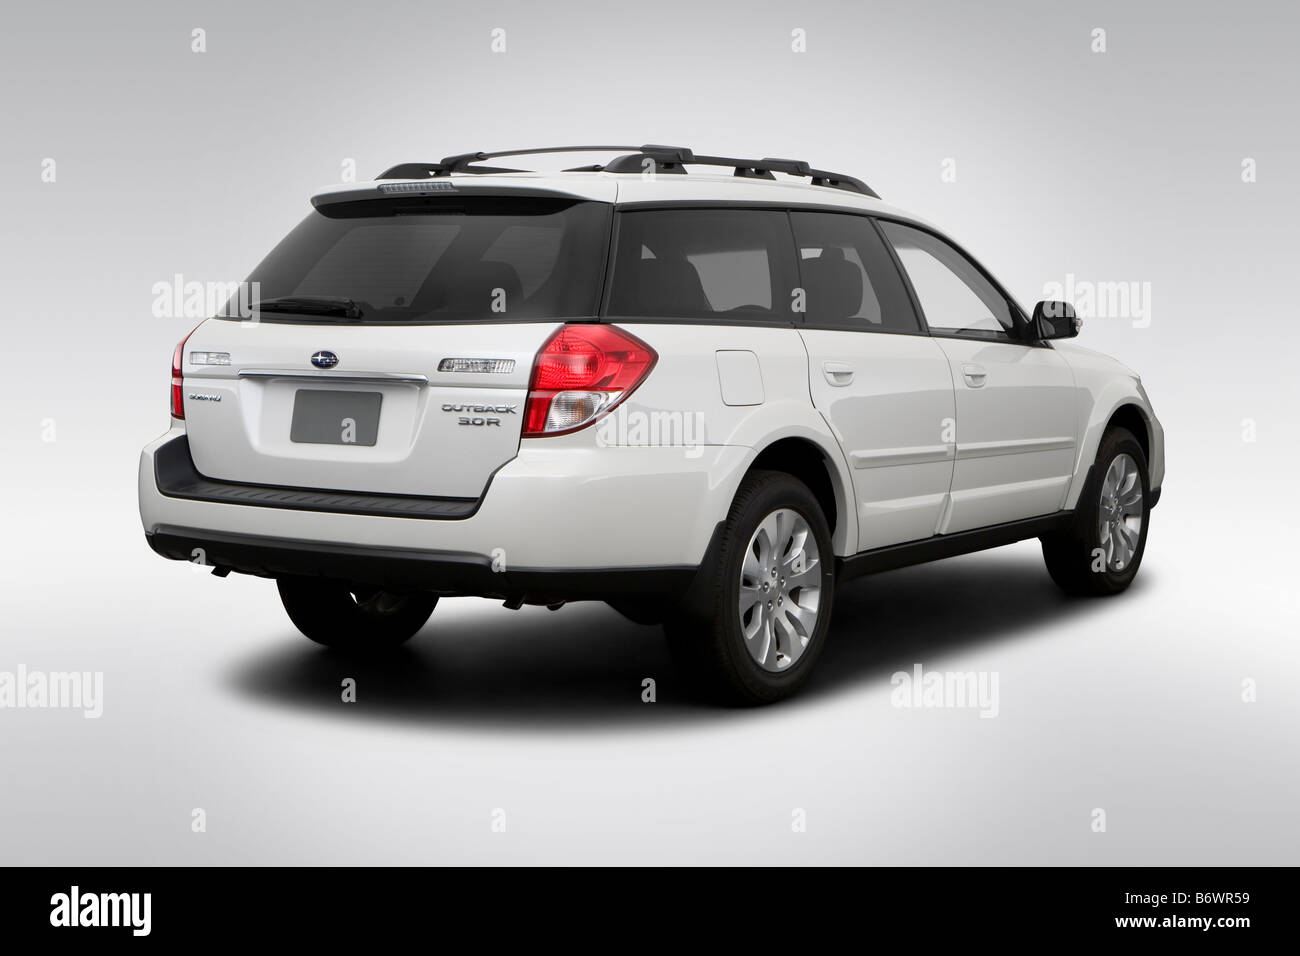 Subaru Outback Stock Photos Images Alamy 1998 Limited 2009 30 R In White Rear Angle View Image